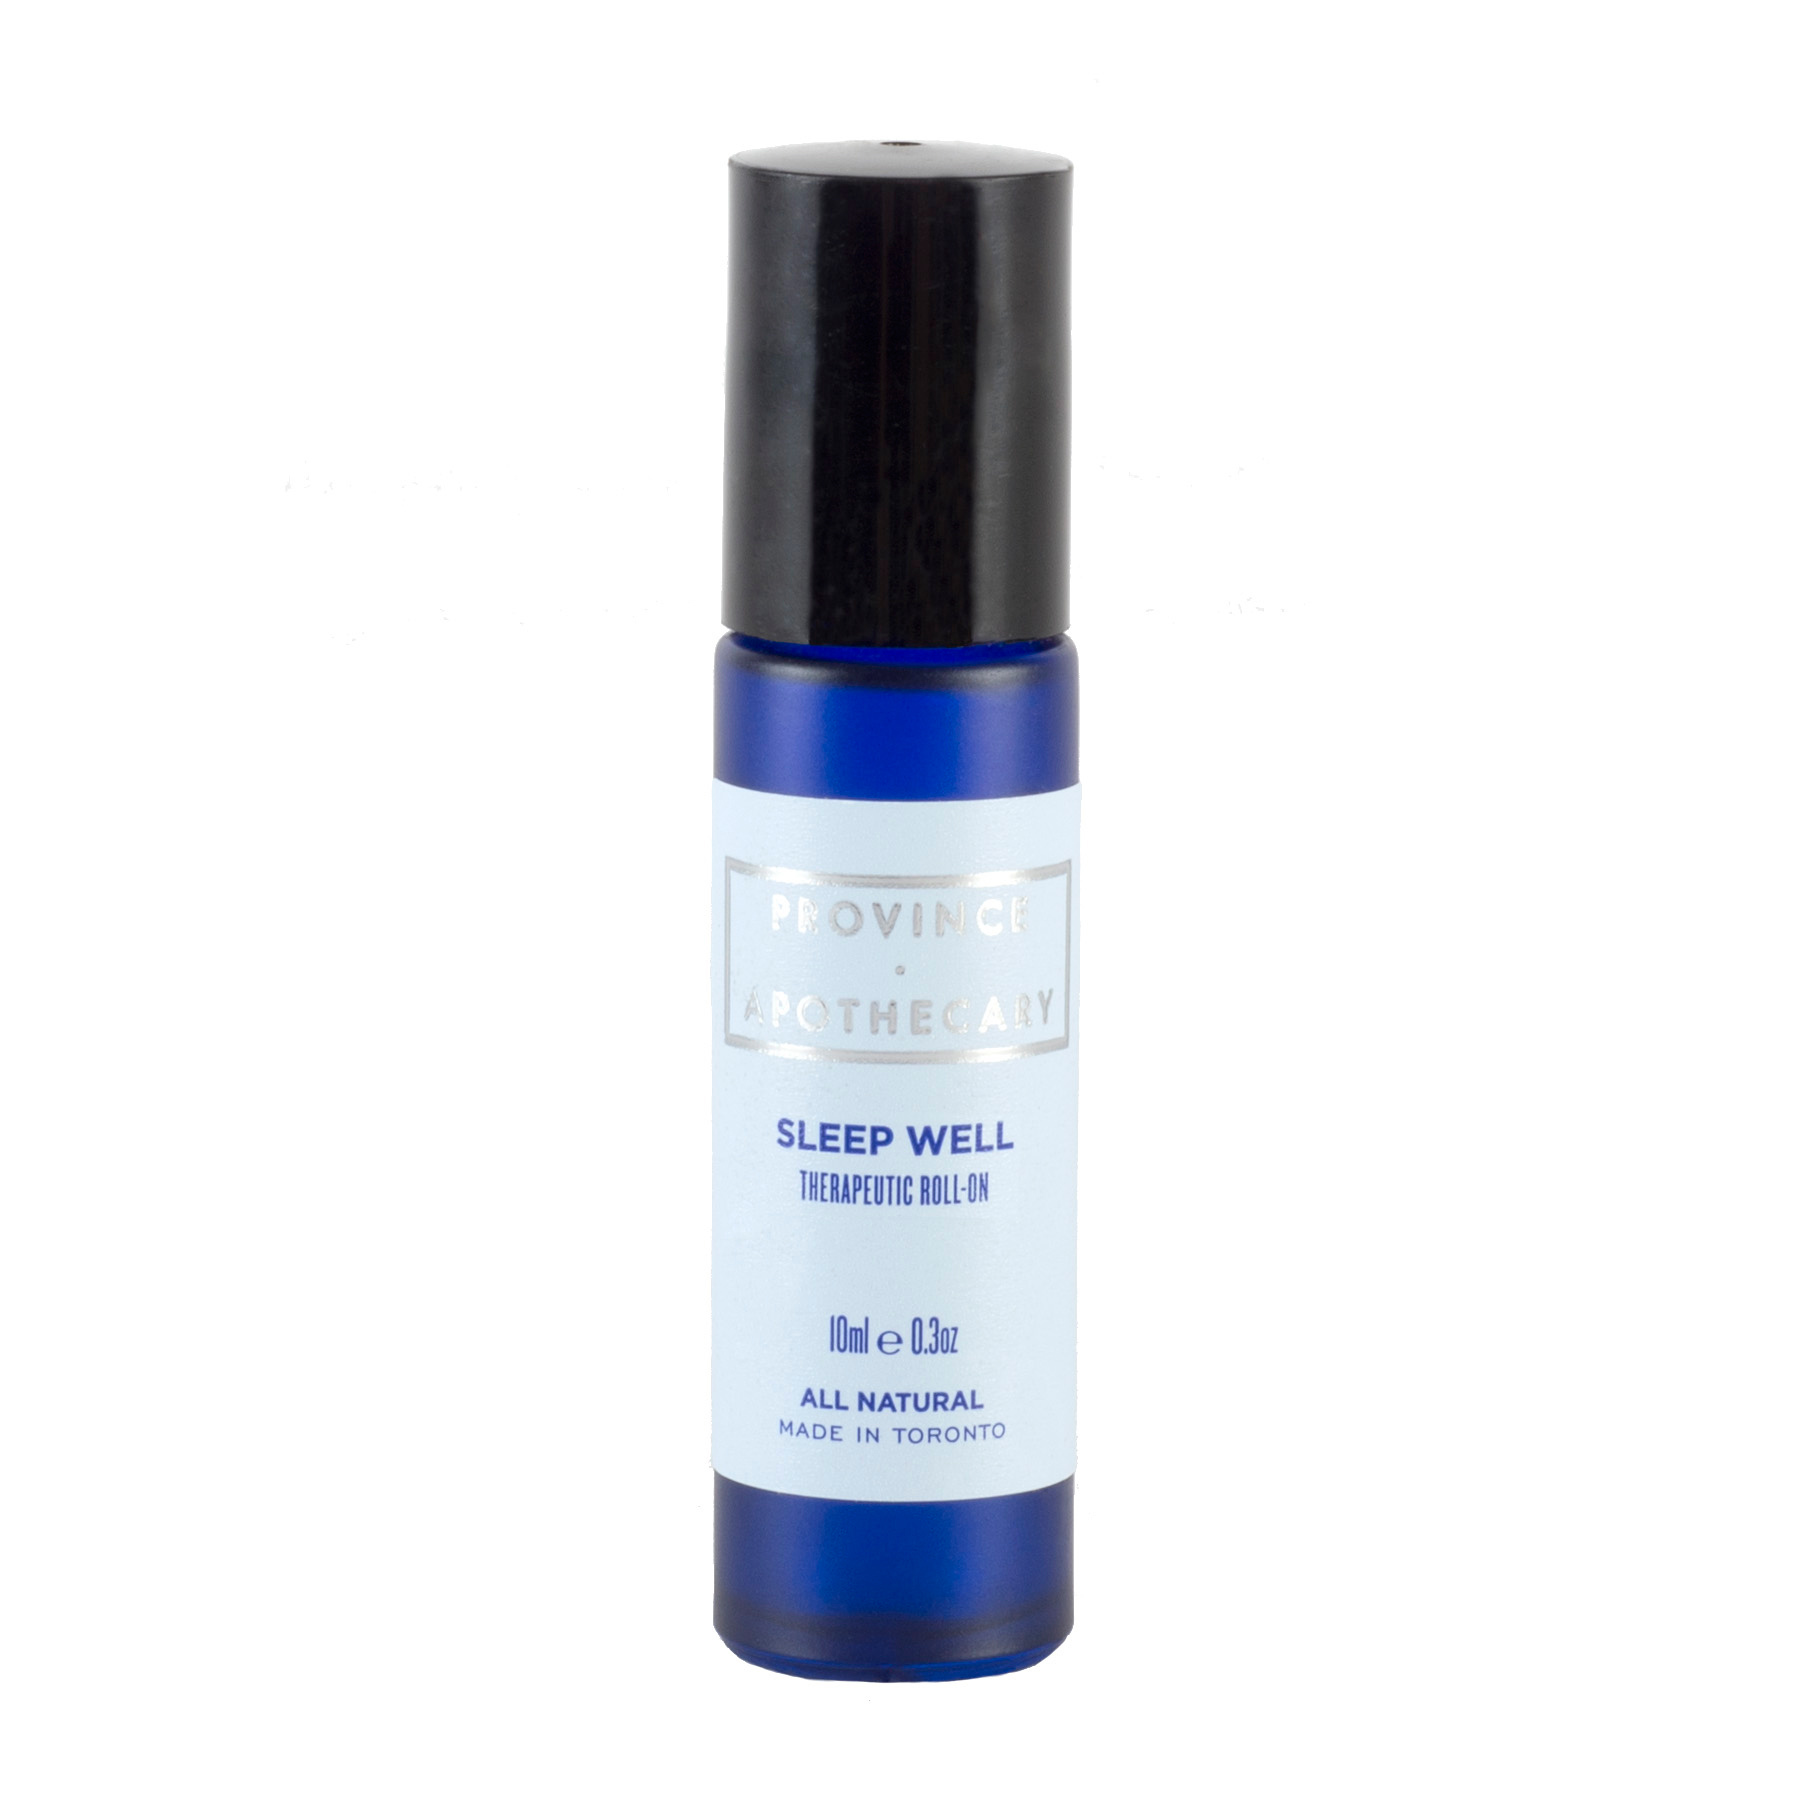 Apply the roll-on directly under your nose and breathe in the smell of lavender, petit grain, Melissa and ylang-ylang.